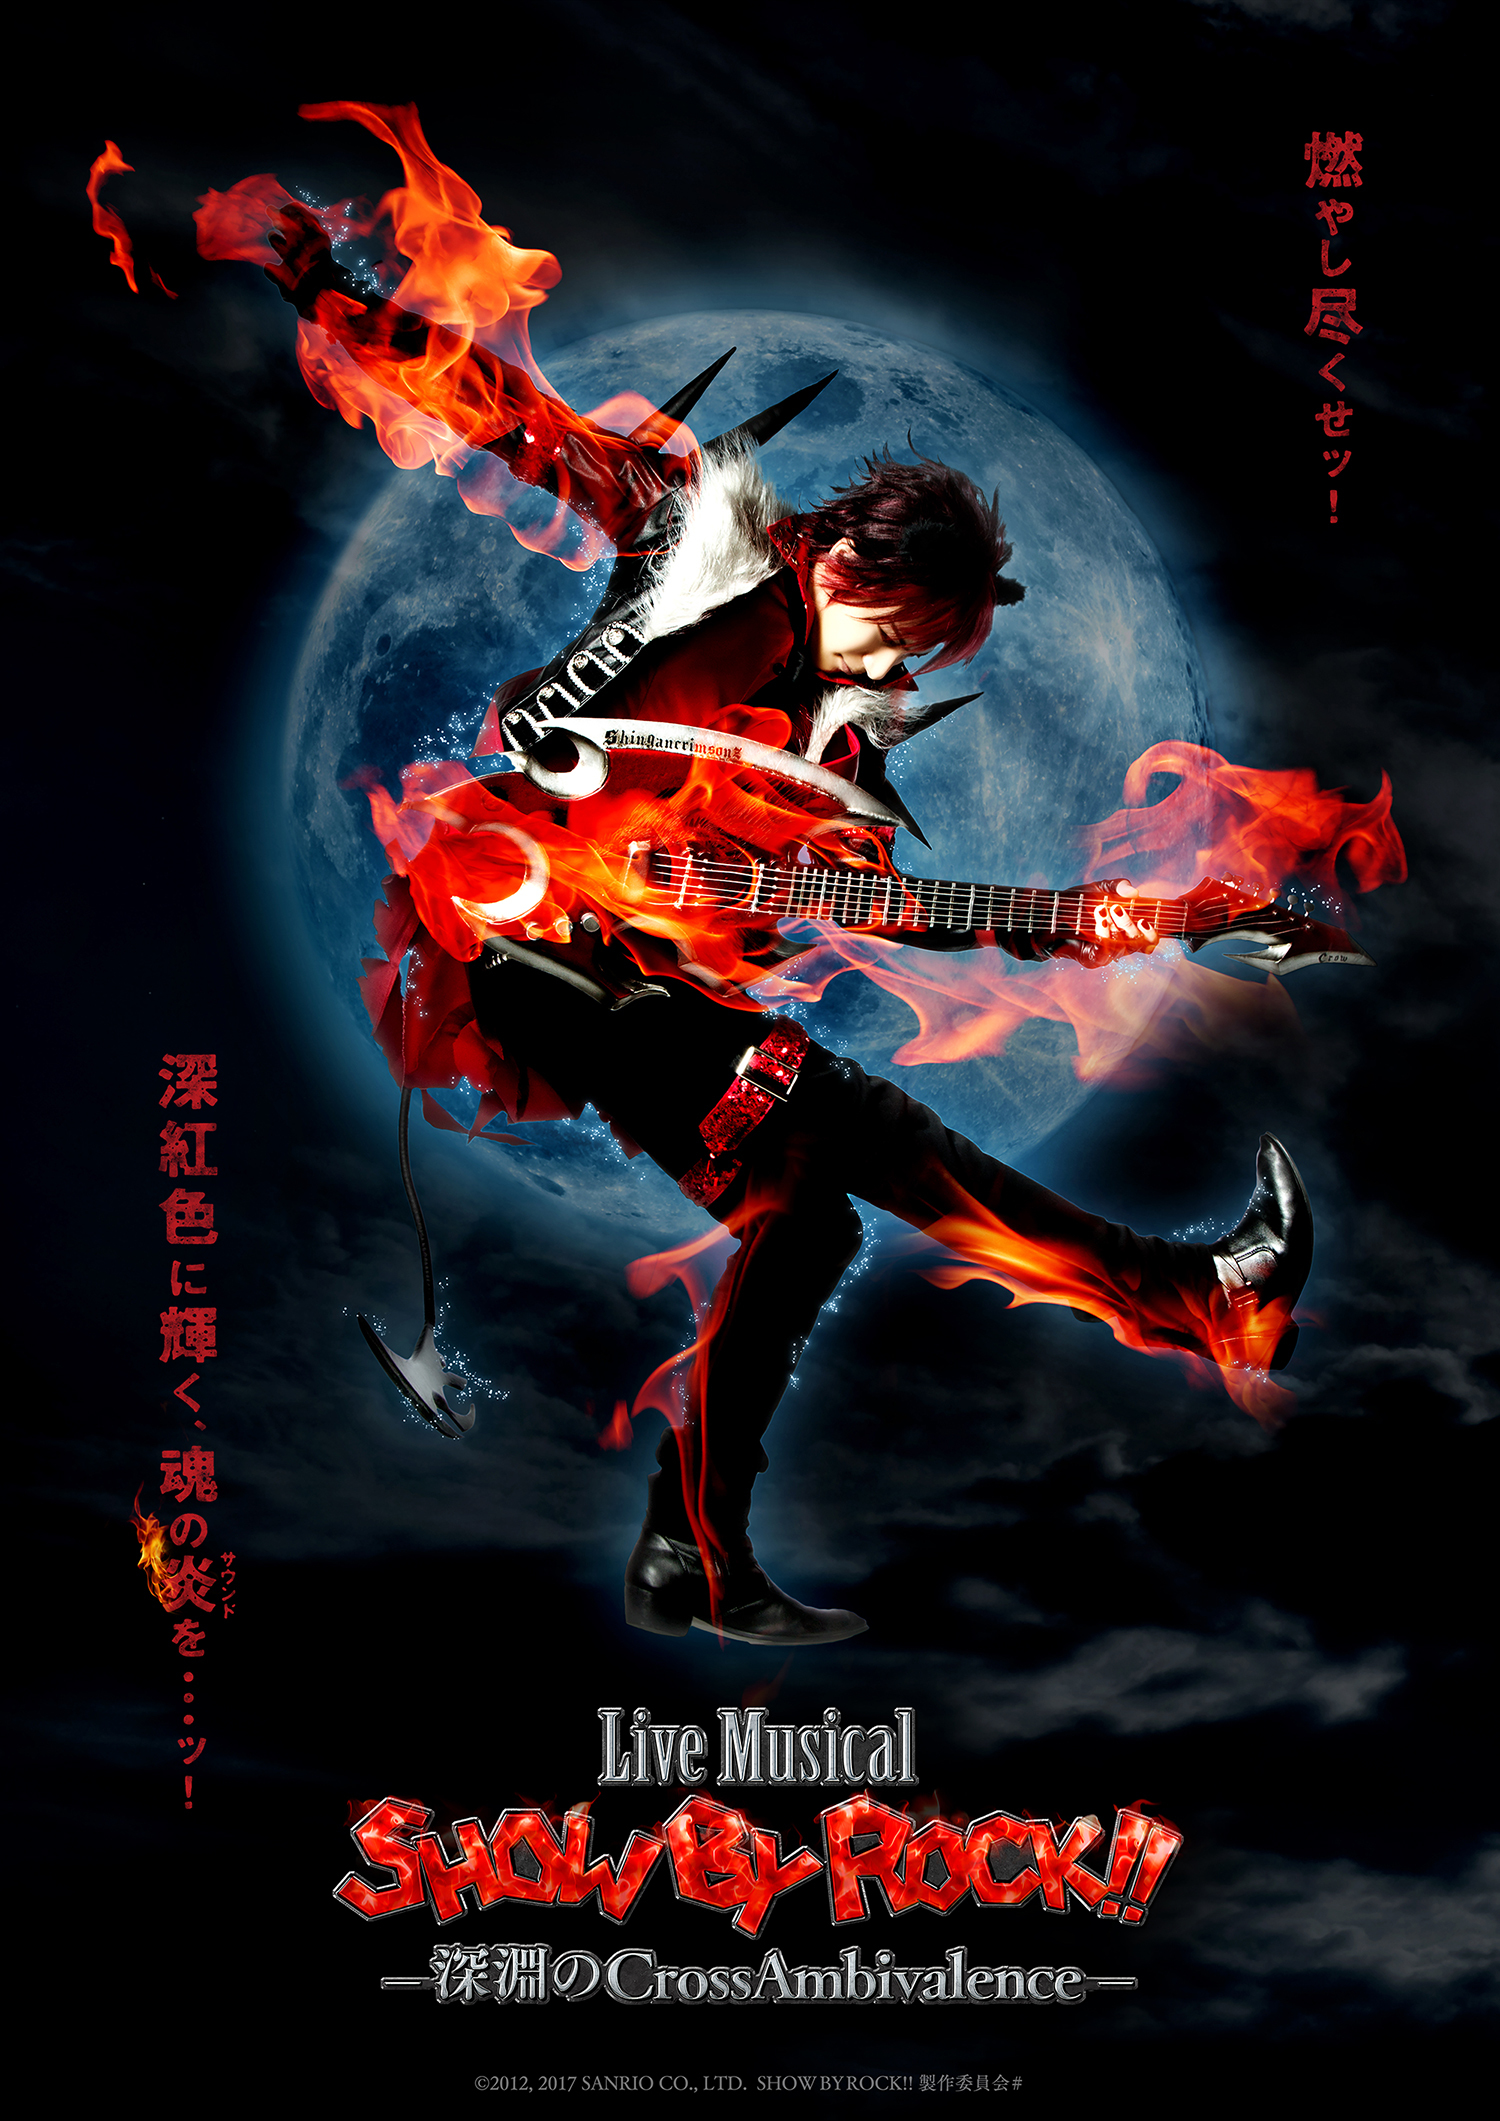 Live Musical「SHOW BY ROCK!!」―深淵のCrossAmbivalence― メインビジュアル (C)2012, 2017 SANRIO CO., LTD. SHOWBYROCK!! 製作委員会#